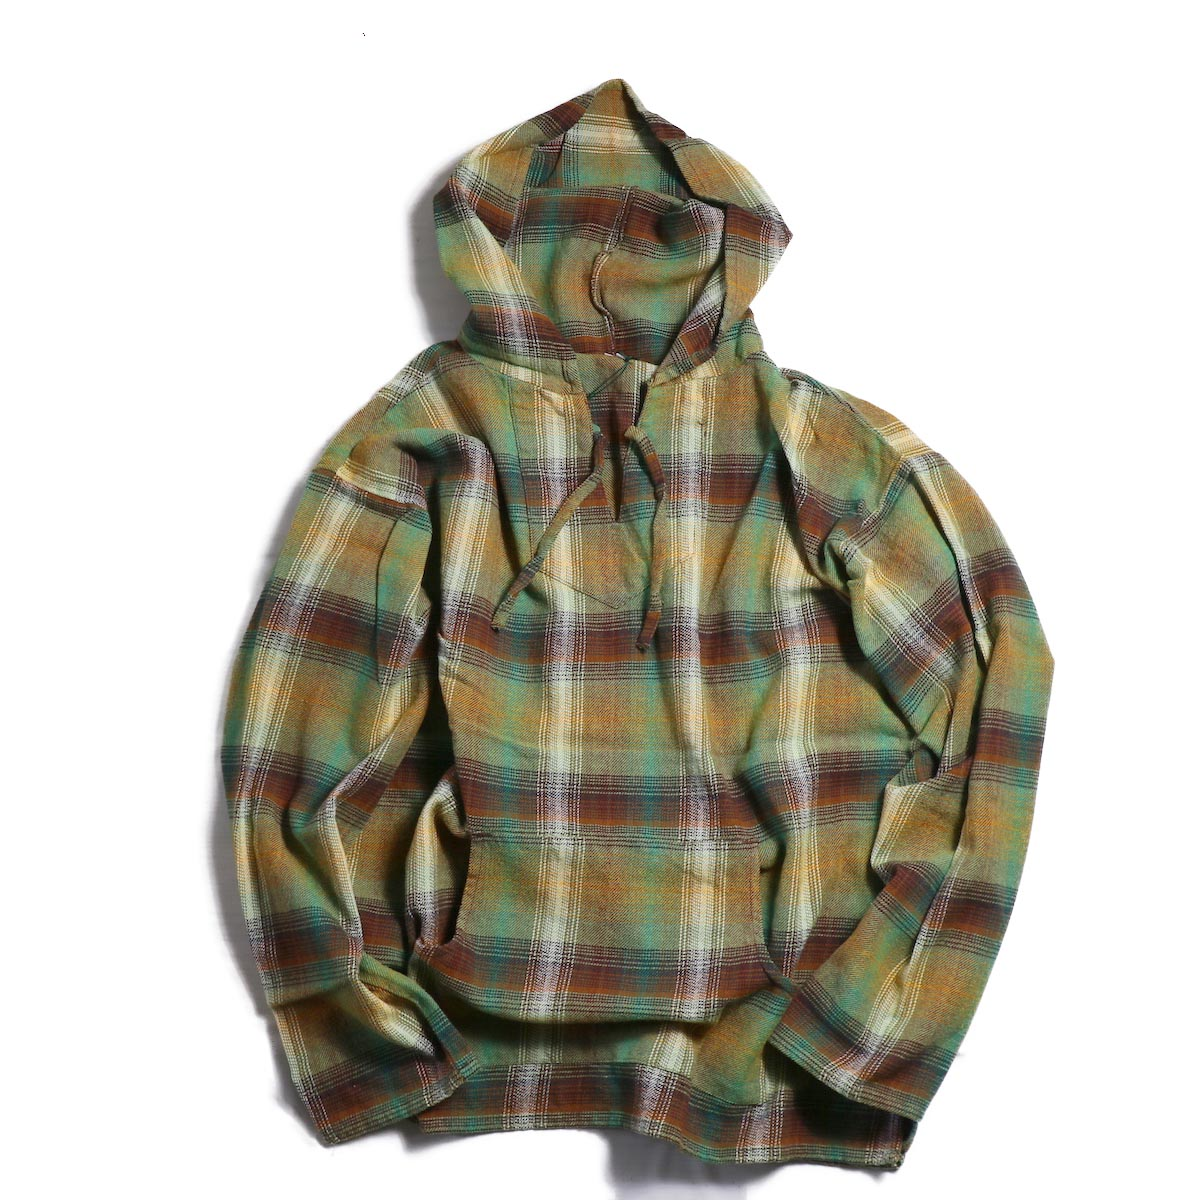 SOUTH2 WEST8 / Mexican Parka Cotton Twill/Plaid -OLIVE